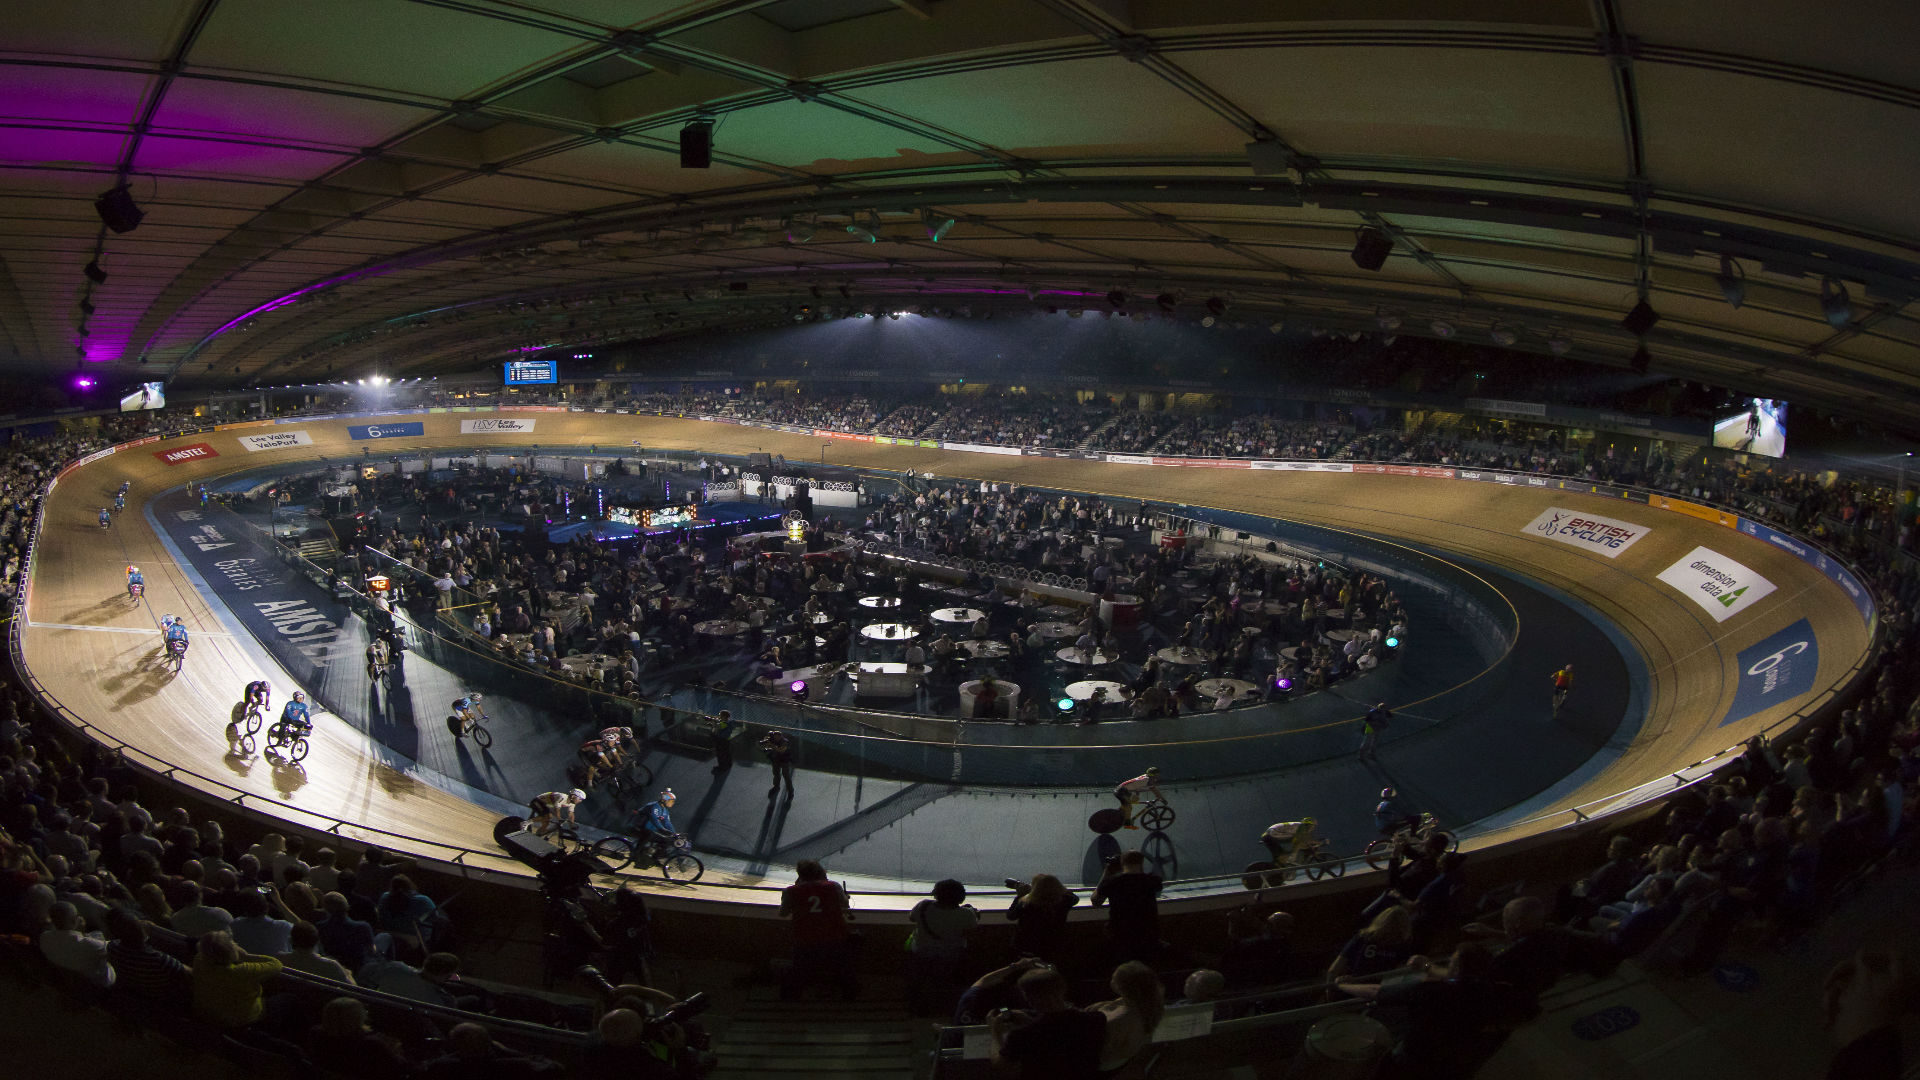 Lee Valley VeloPark hosts Six Day London. Image courtesy of Six Day London